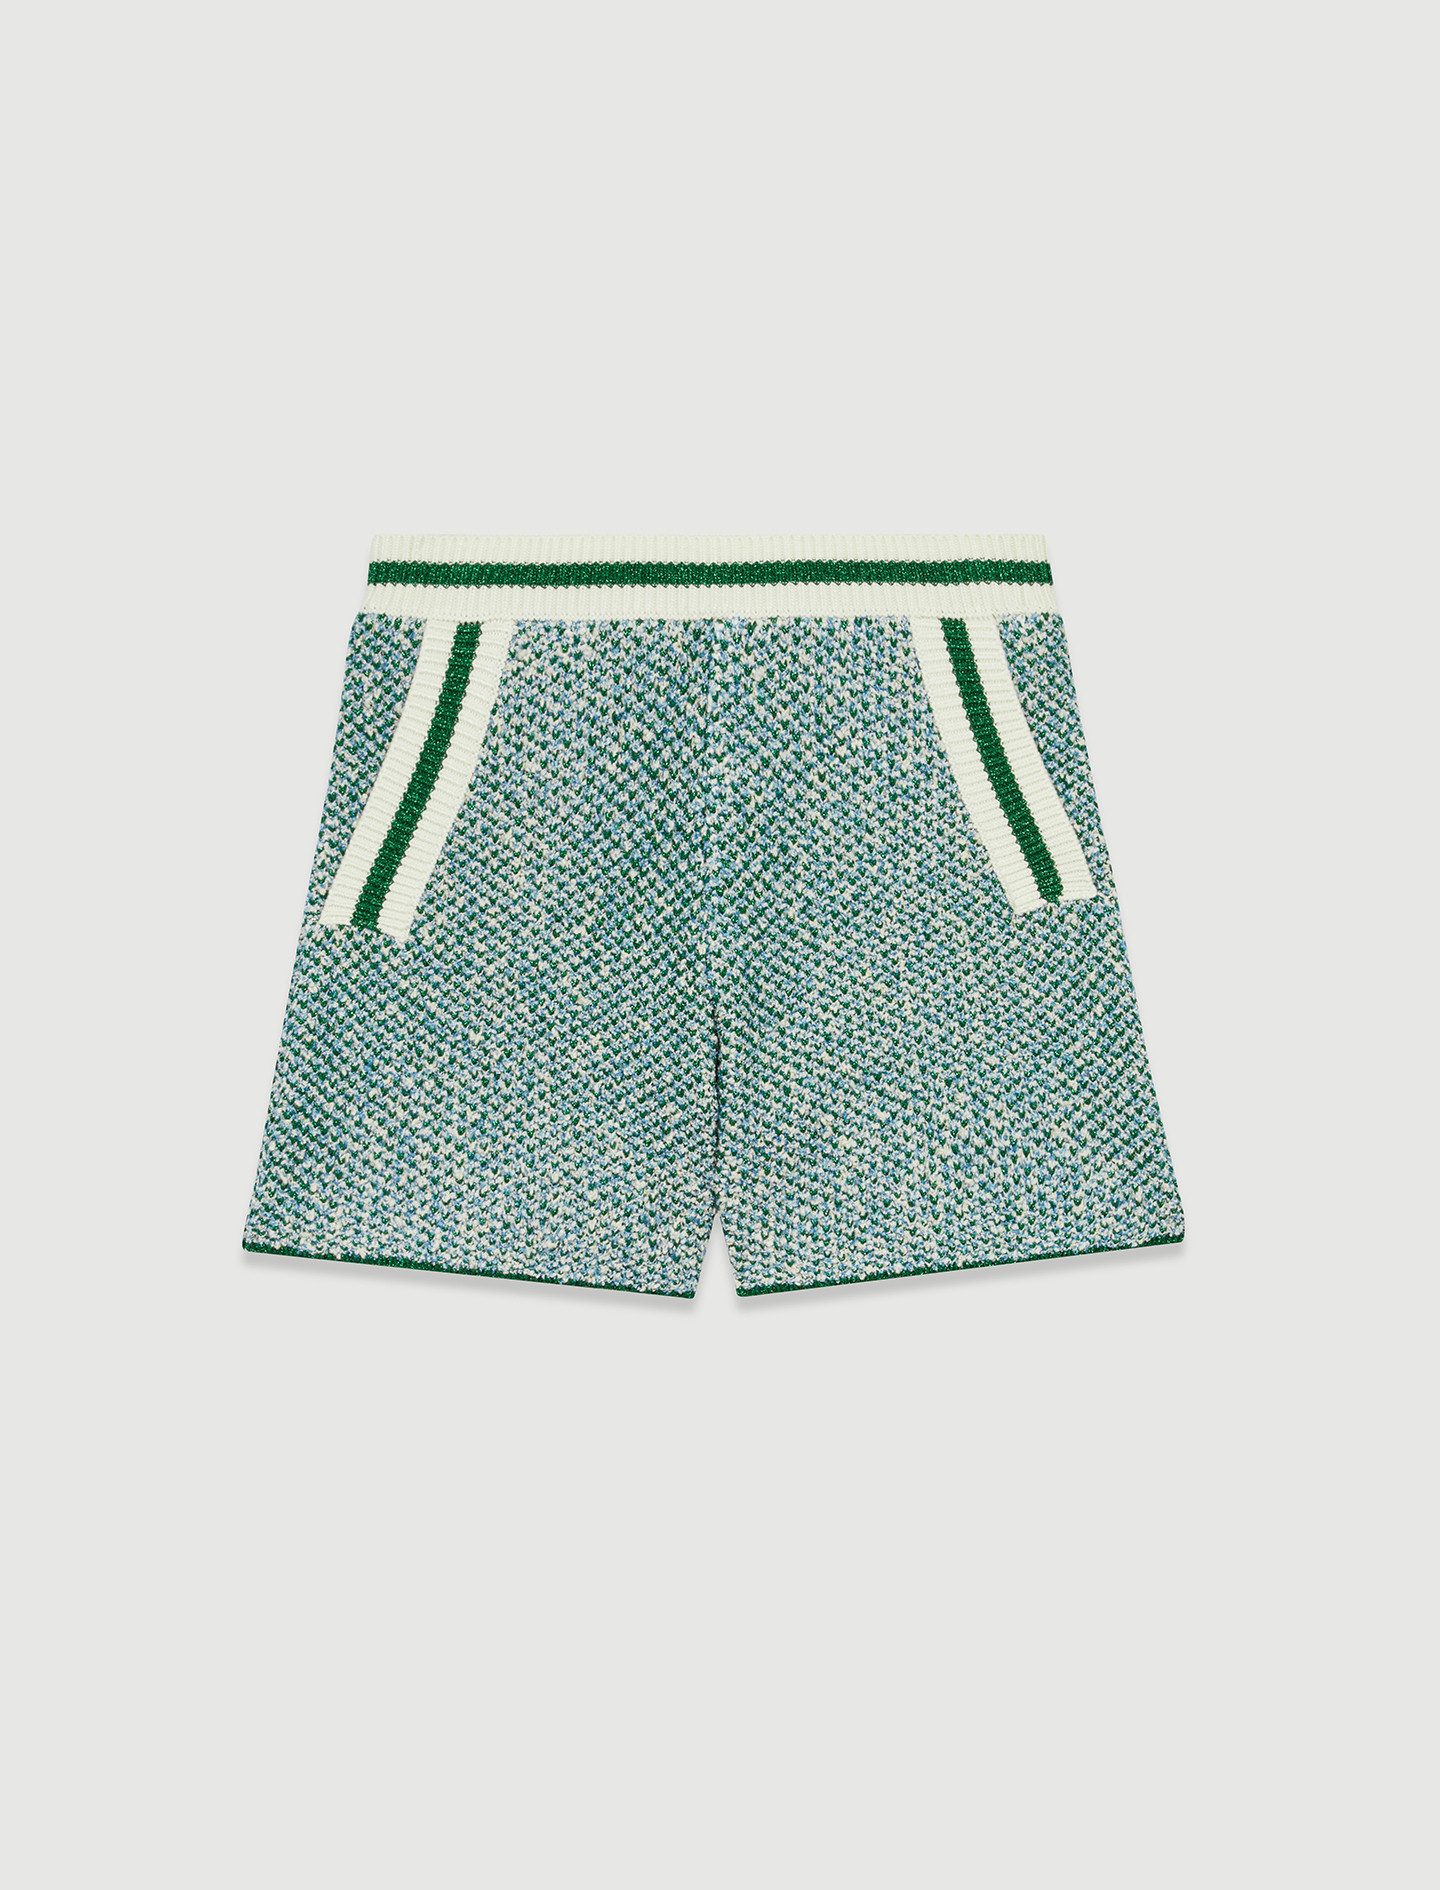 Green tween style shorts with contrast trims - Multiclr